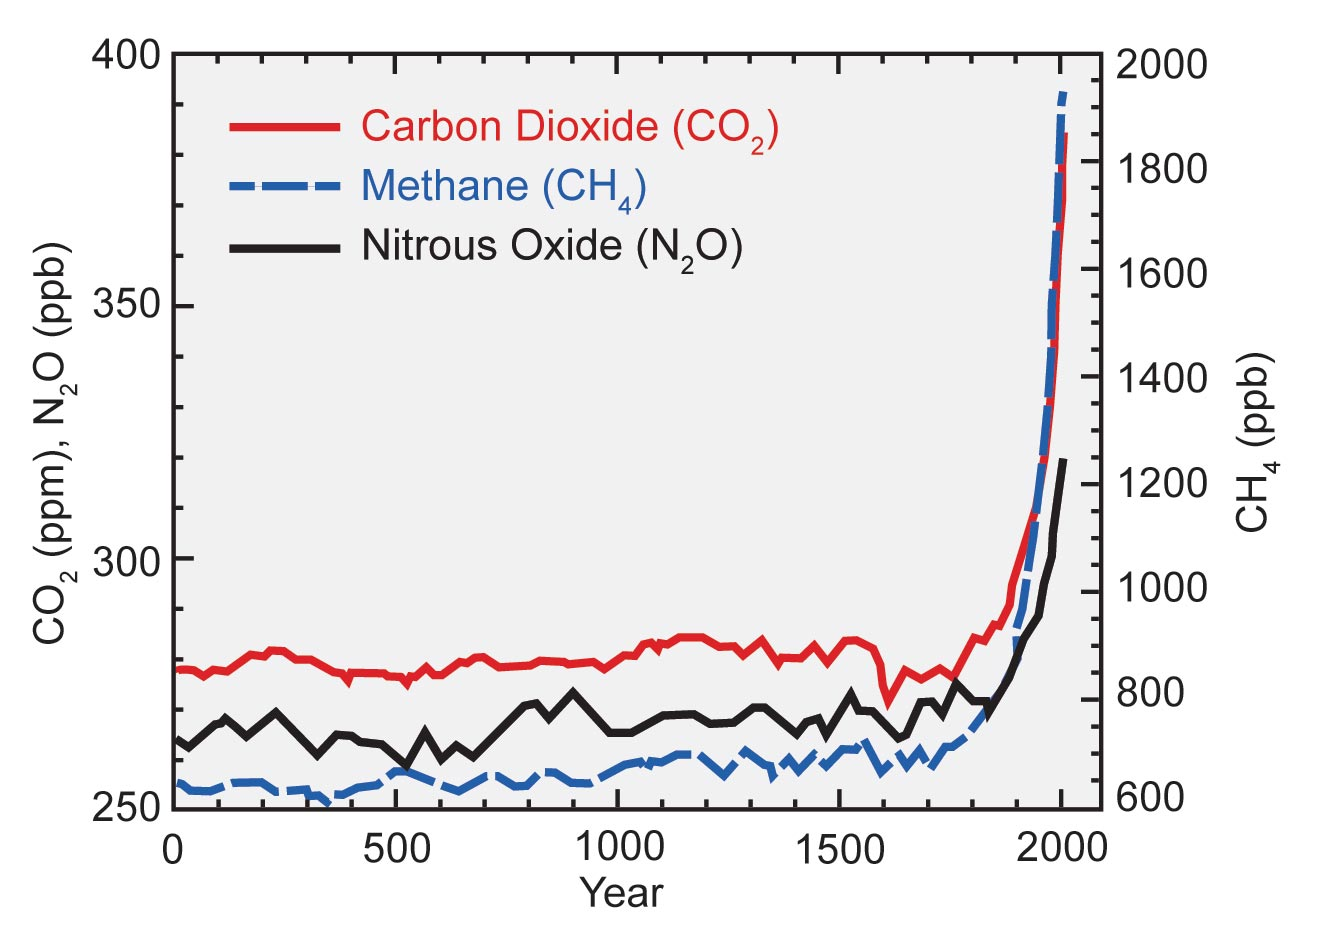 2000 Years of Heat Trapping Gas Levels